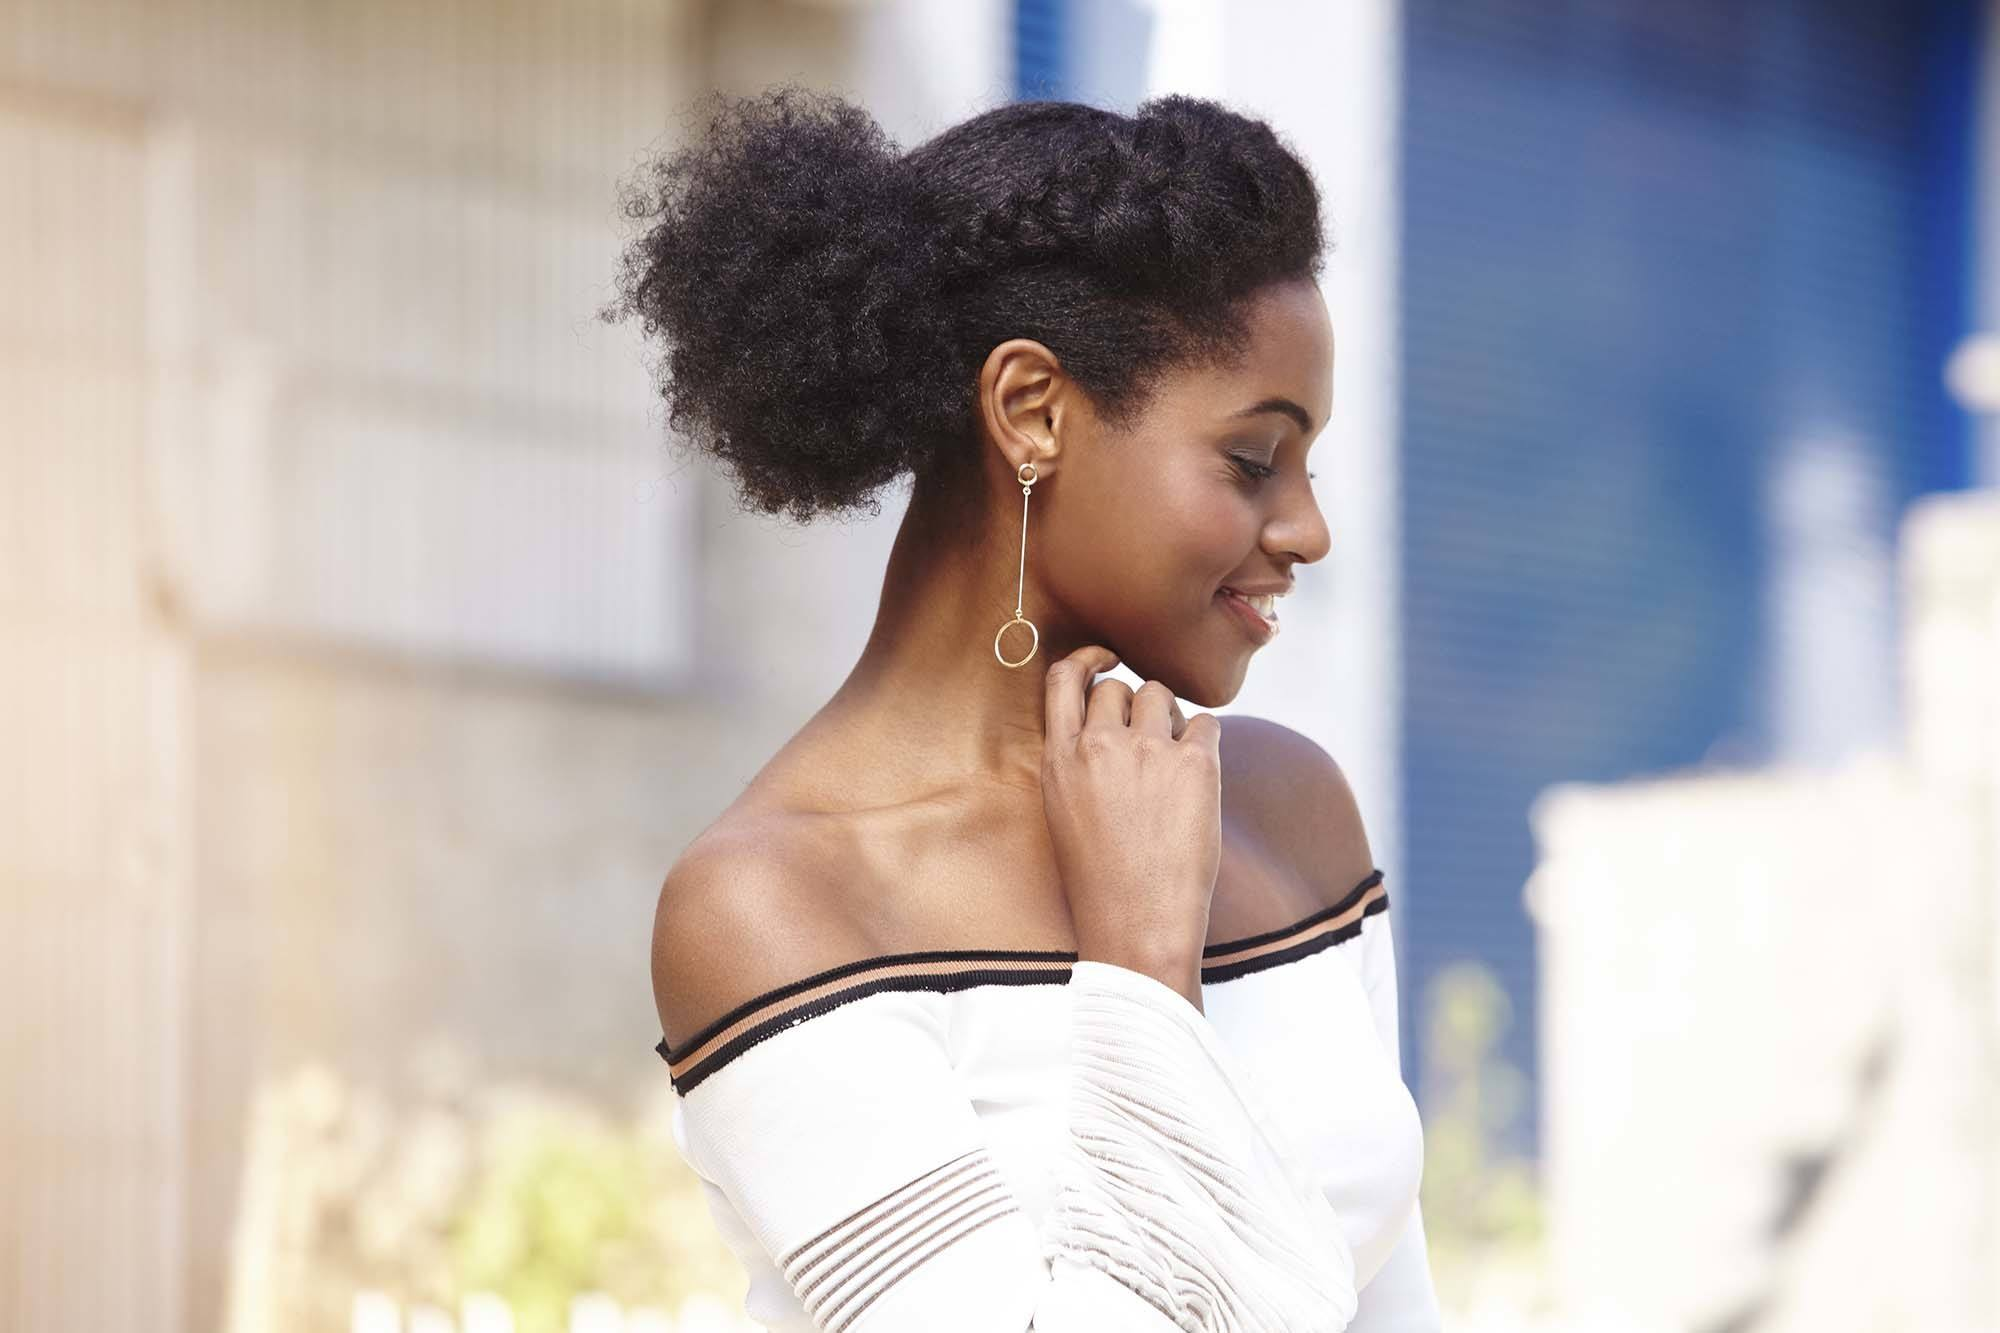 hairstyles for black women: close up shot of a woman with a dark brown afro hair fashioned into a braided, low ponytail, wearing a white bardot top and posing outside